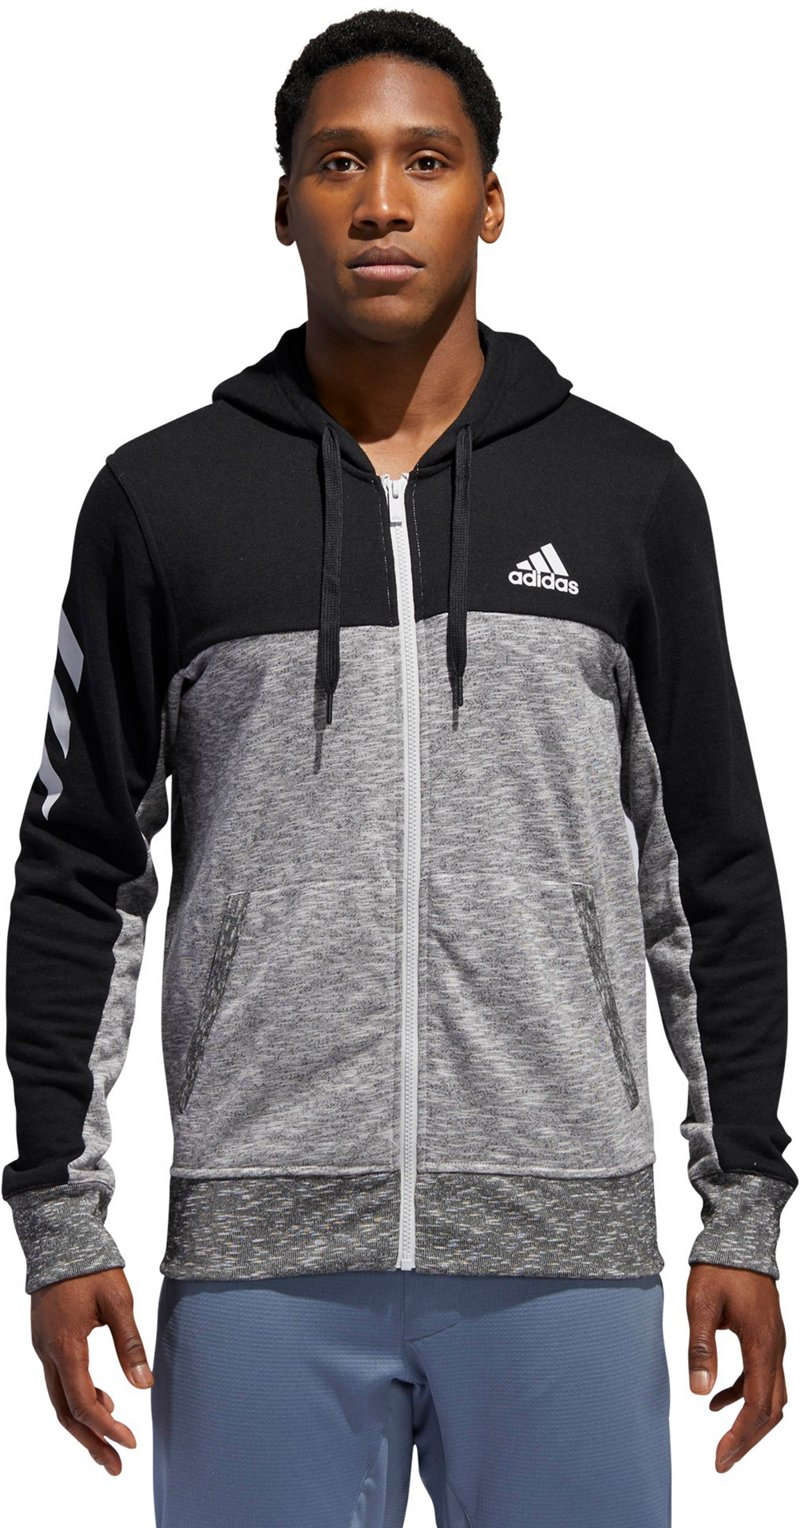 Adidas Men's Pick Up Full Zip Shooter Hoodie (Black/LGH Solid Gray, Size Small) - Men's Athletic Apparel, Men's Athletic Jackets at Academy Sports thumbnail